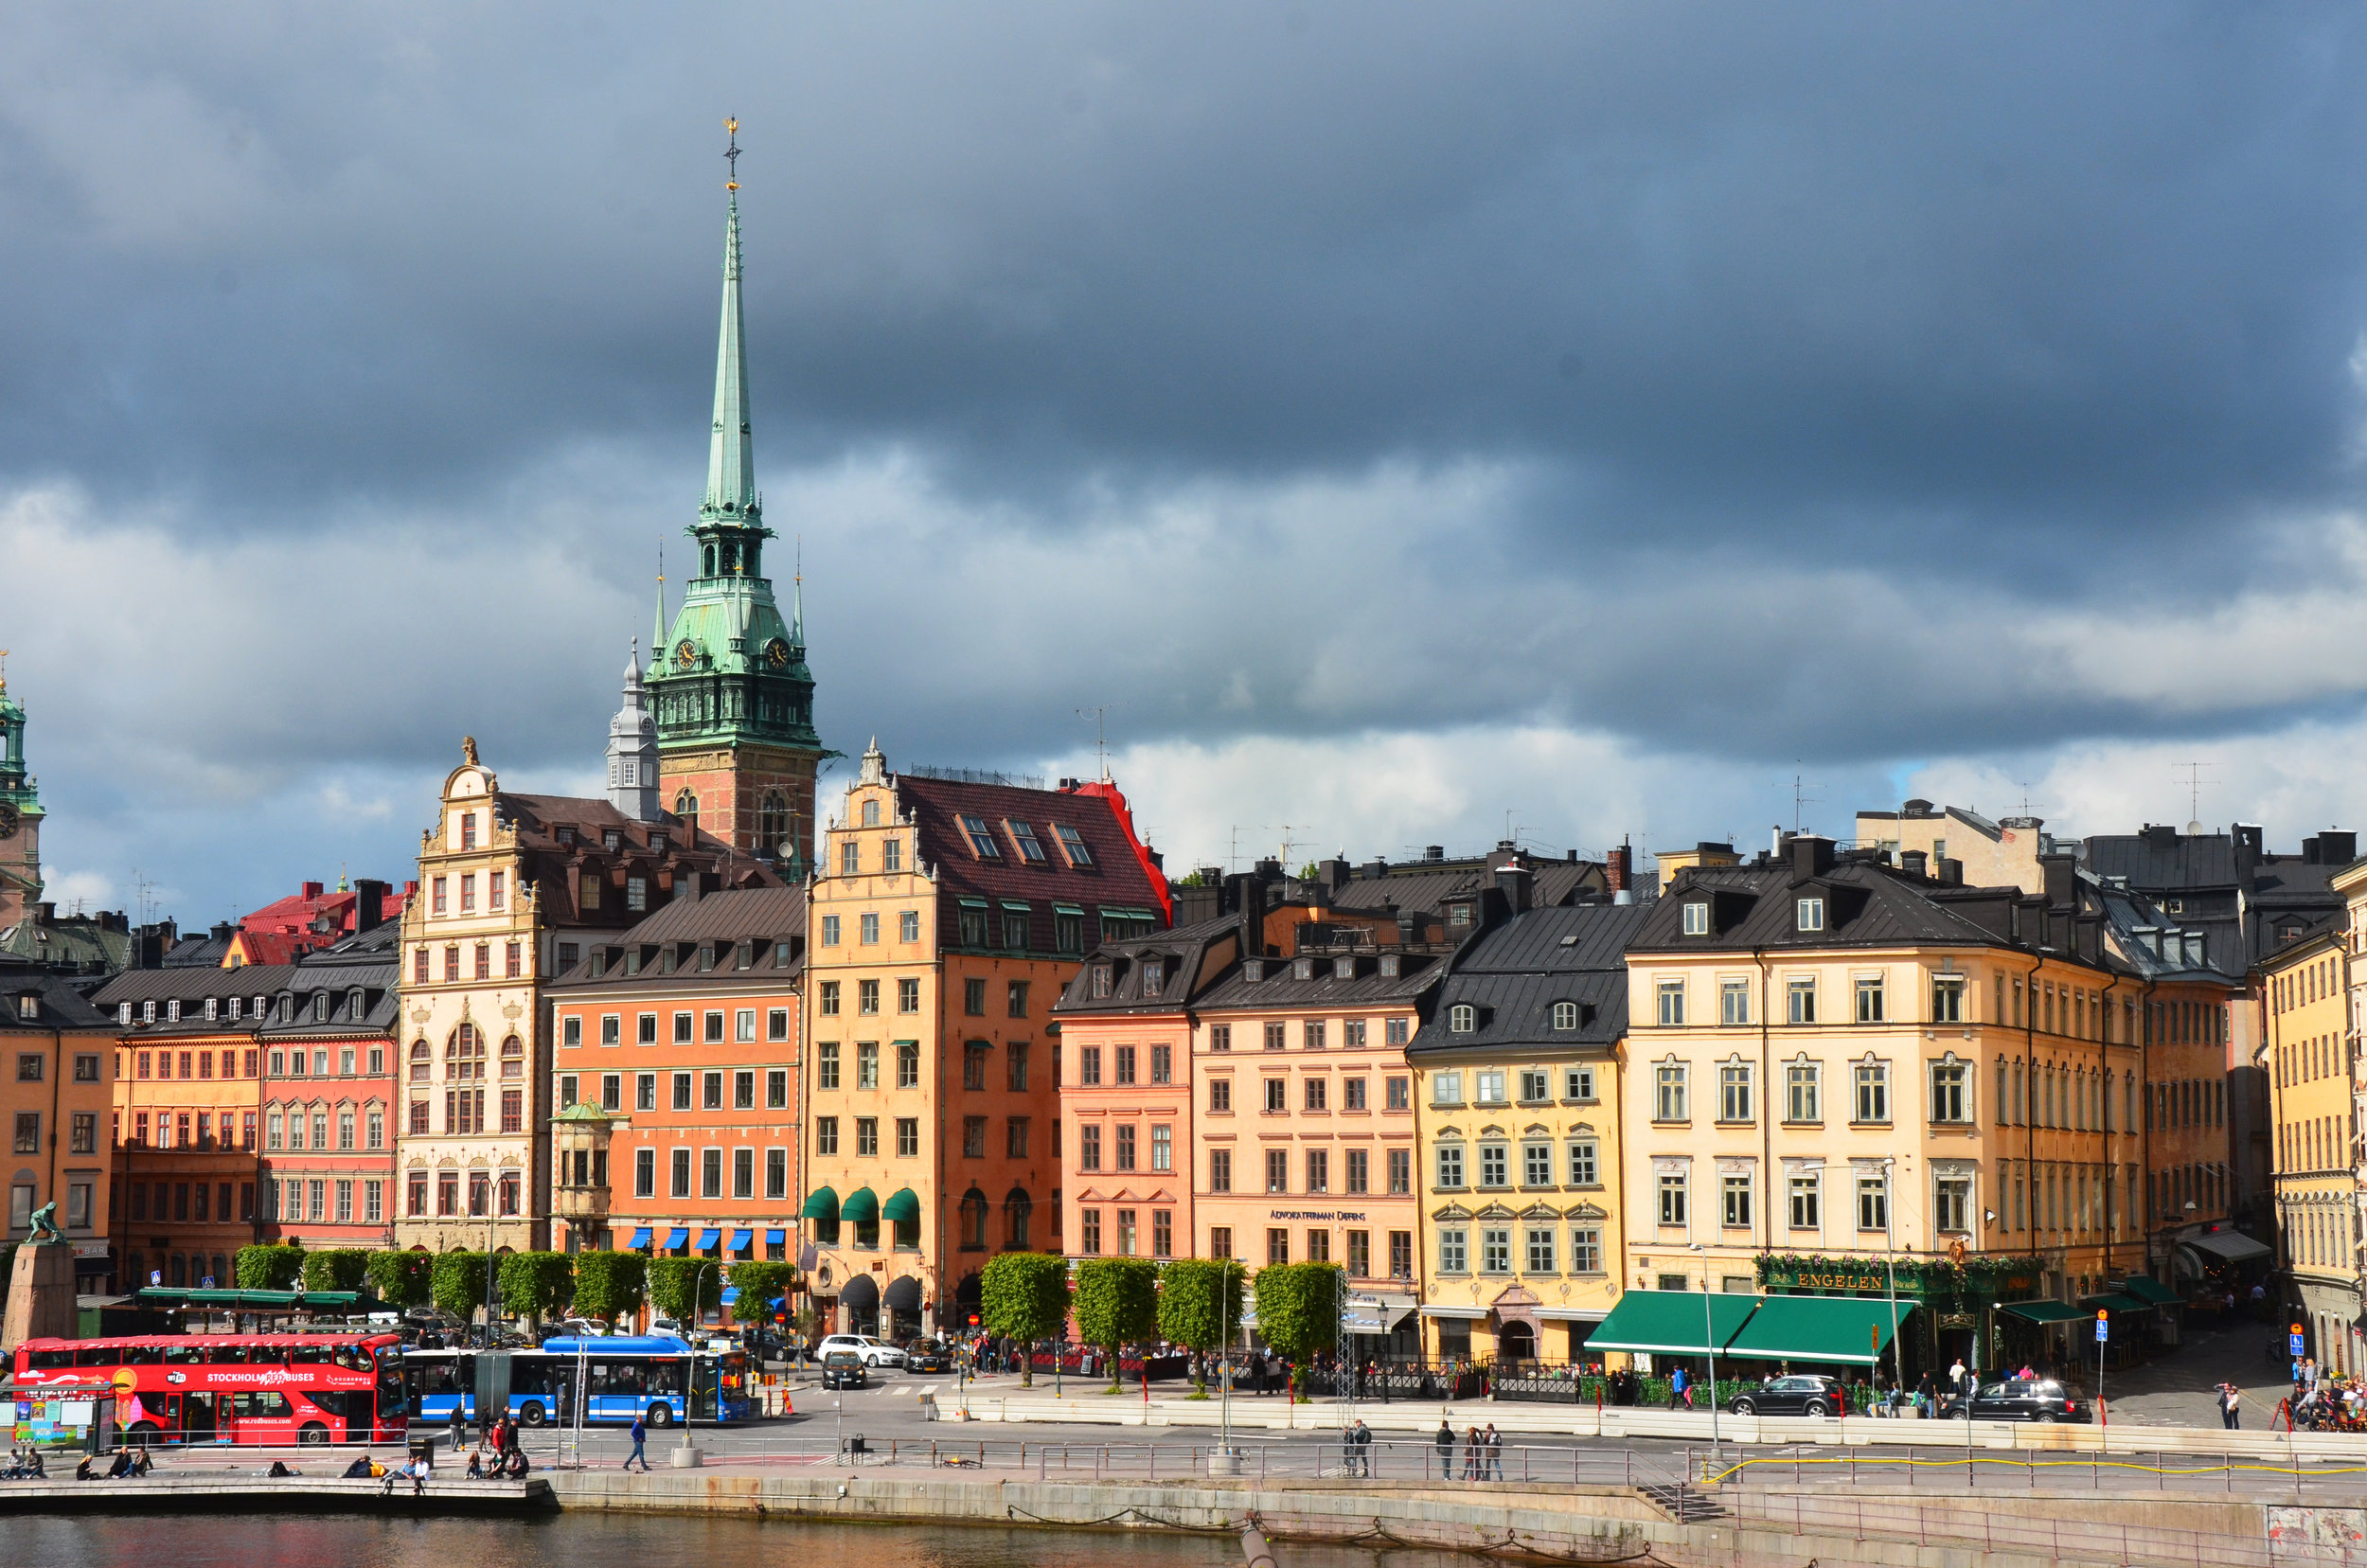 Cities like Stockholm, Sweden plan to go fossil fuel-free by 2040. Photo by Anneli Tostar.